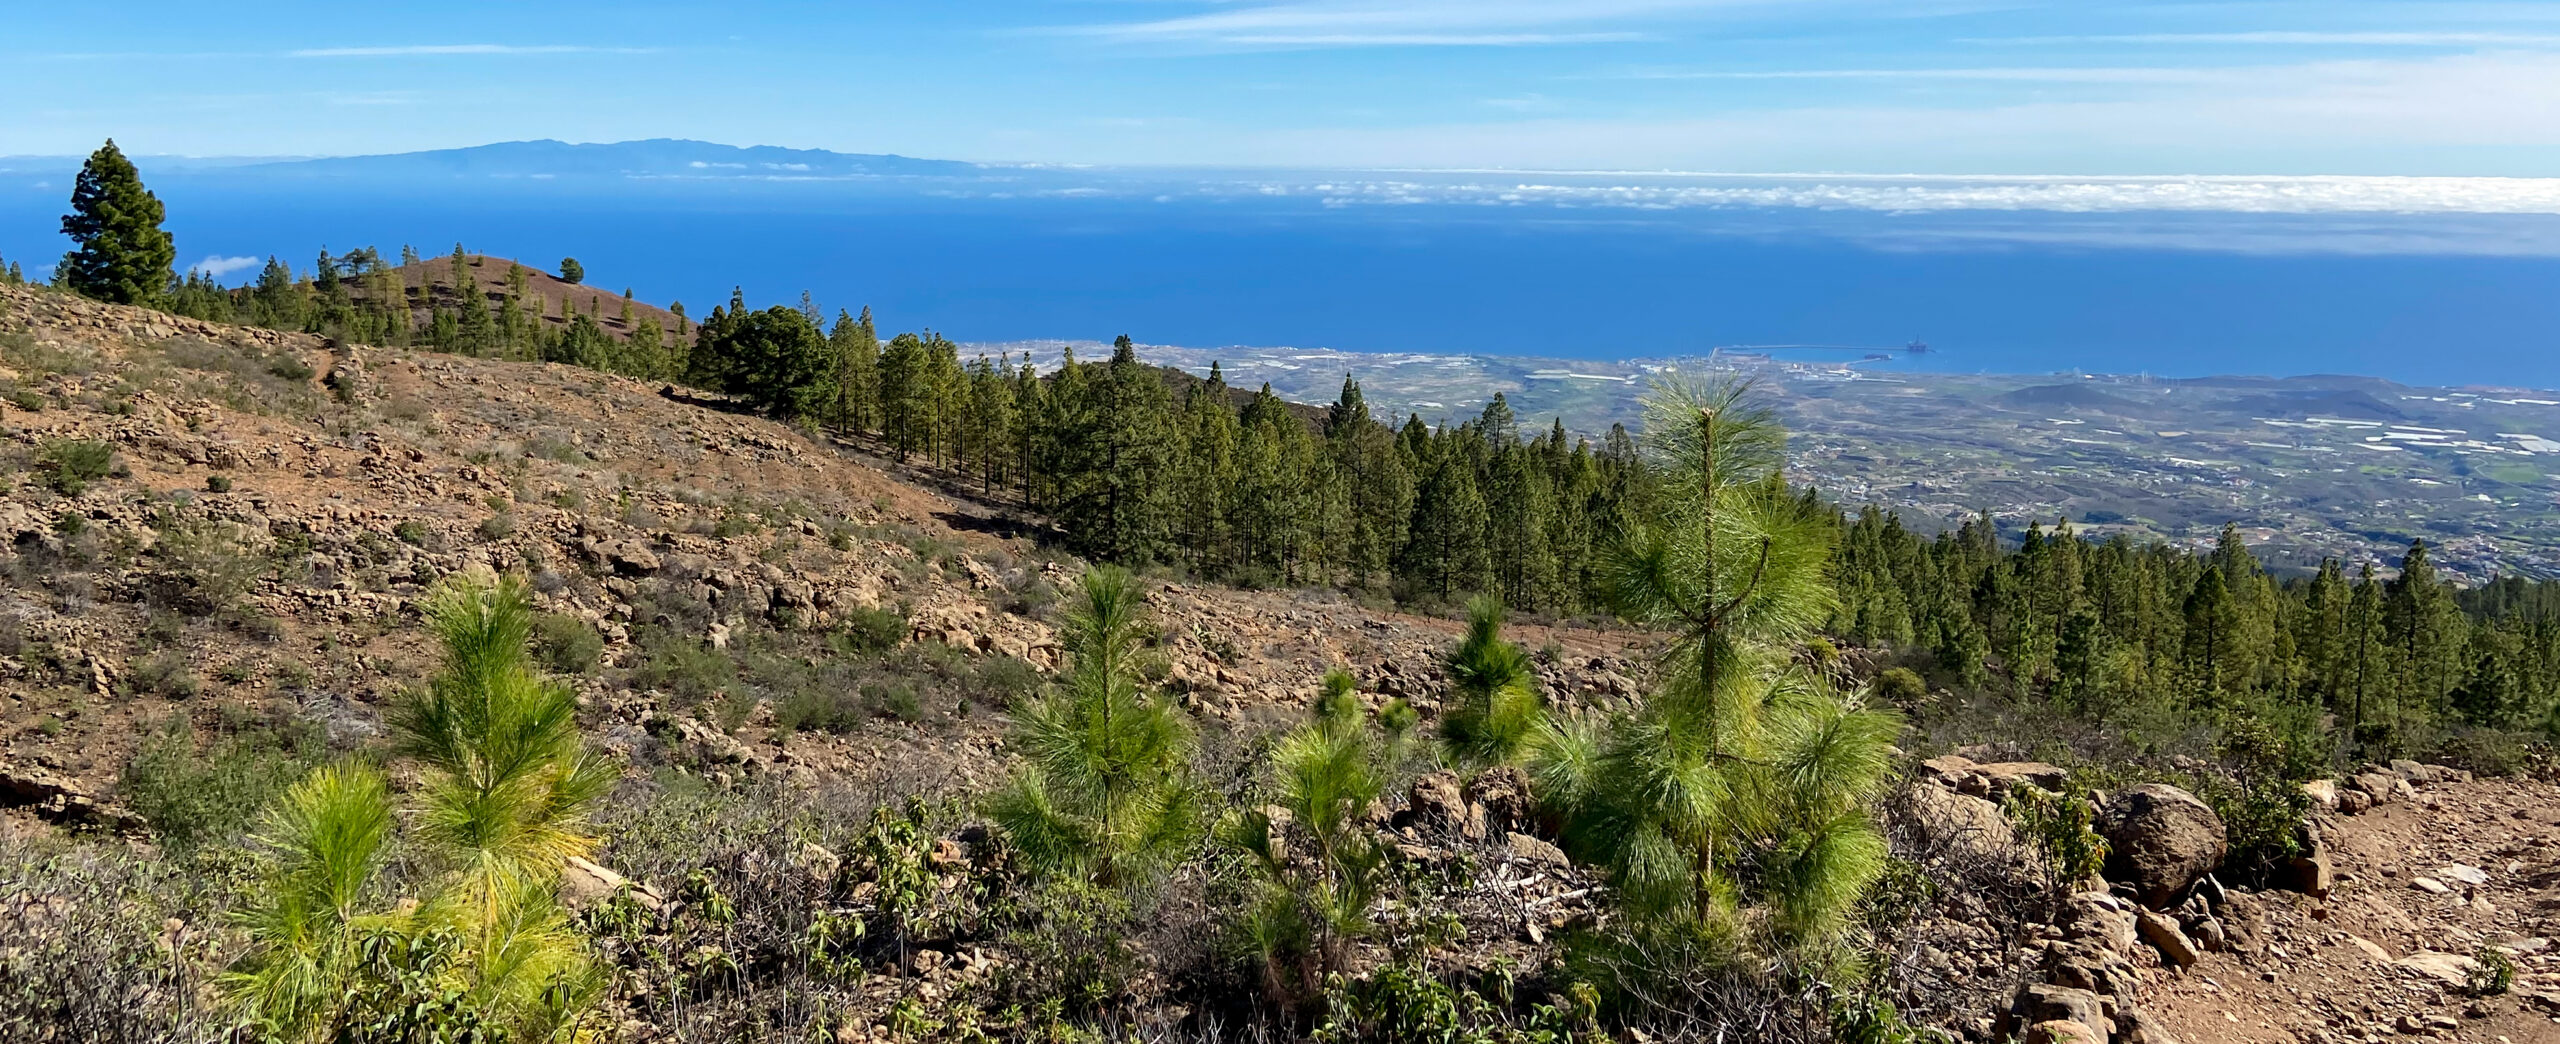 View of Gran Canaria from above